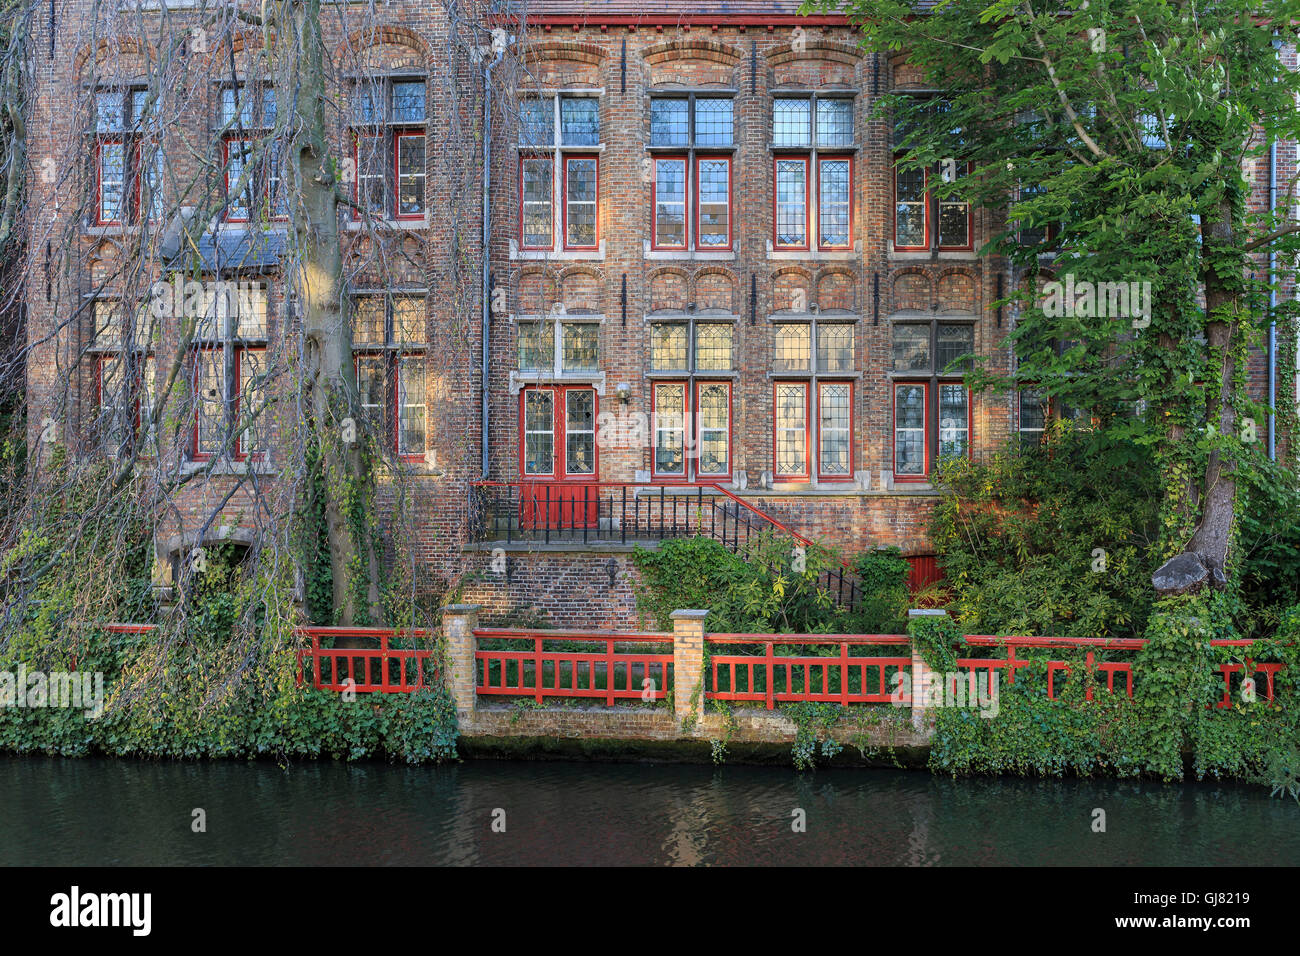 Belgium, West Flanders, Bruges, a mystical and derelicted brick house - Stock Image